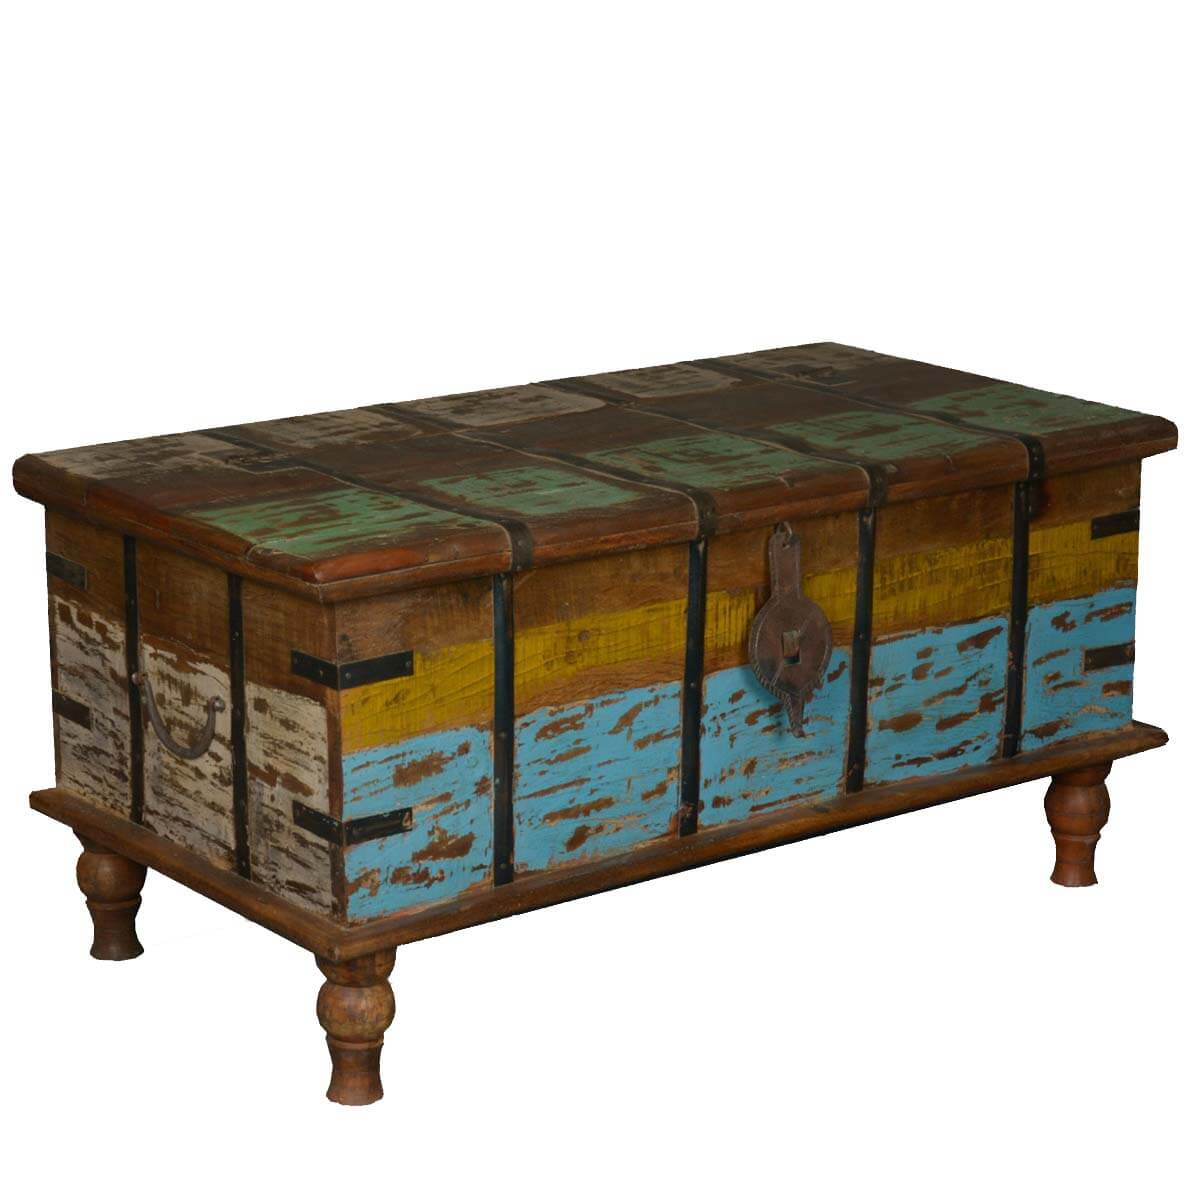 Home Rustic Reclaimed Wood Speckled Paint Standing Coffee Table Chest. Full resolution  file, nominally Width 1200 Height 1200 pixels, file with #63421F.